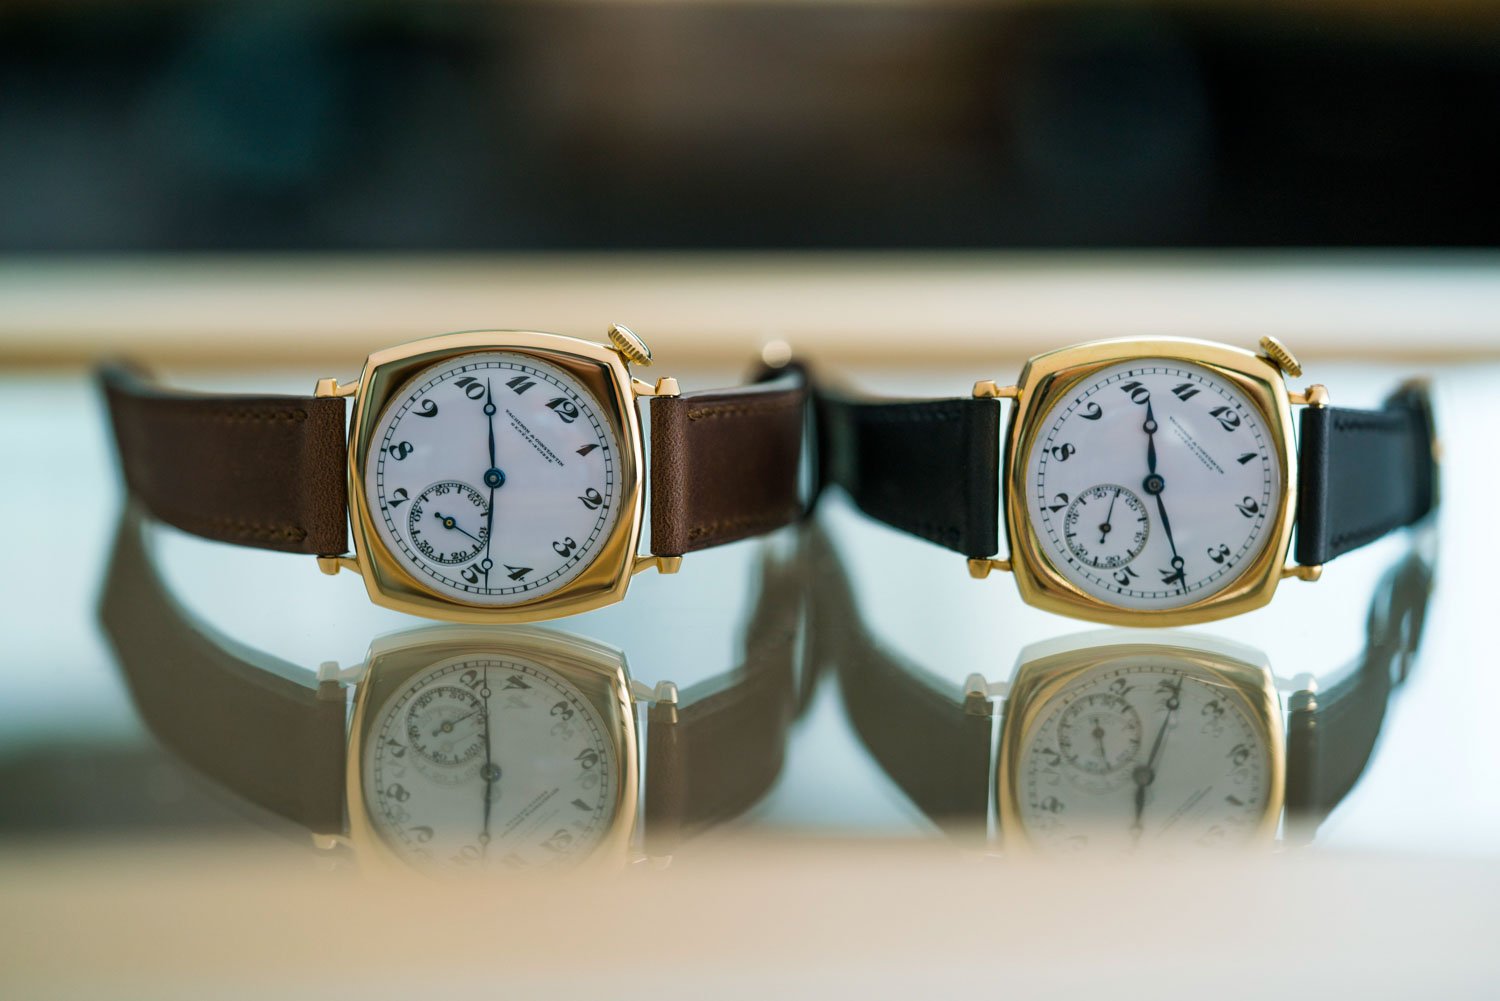 On the left you have the 2021 recreation of Cadman's original American 1921, which is the very watch on the right